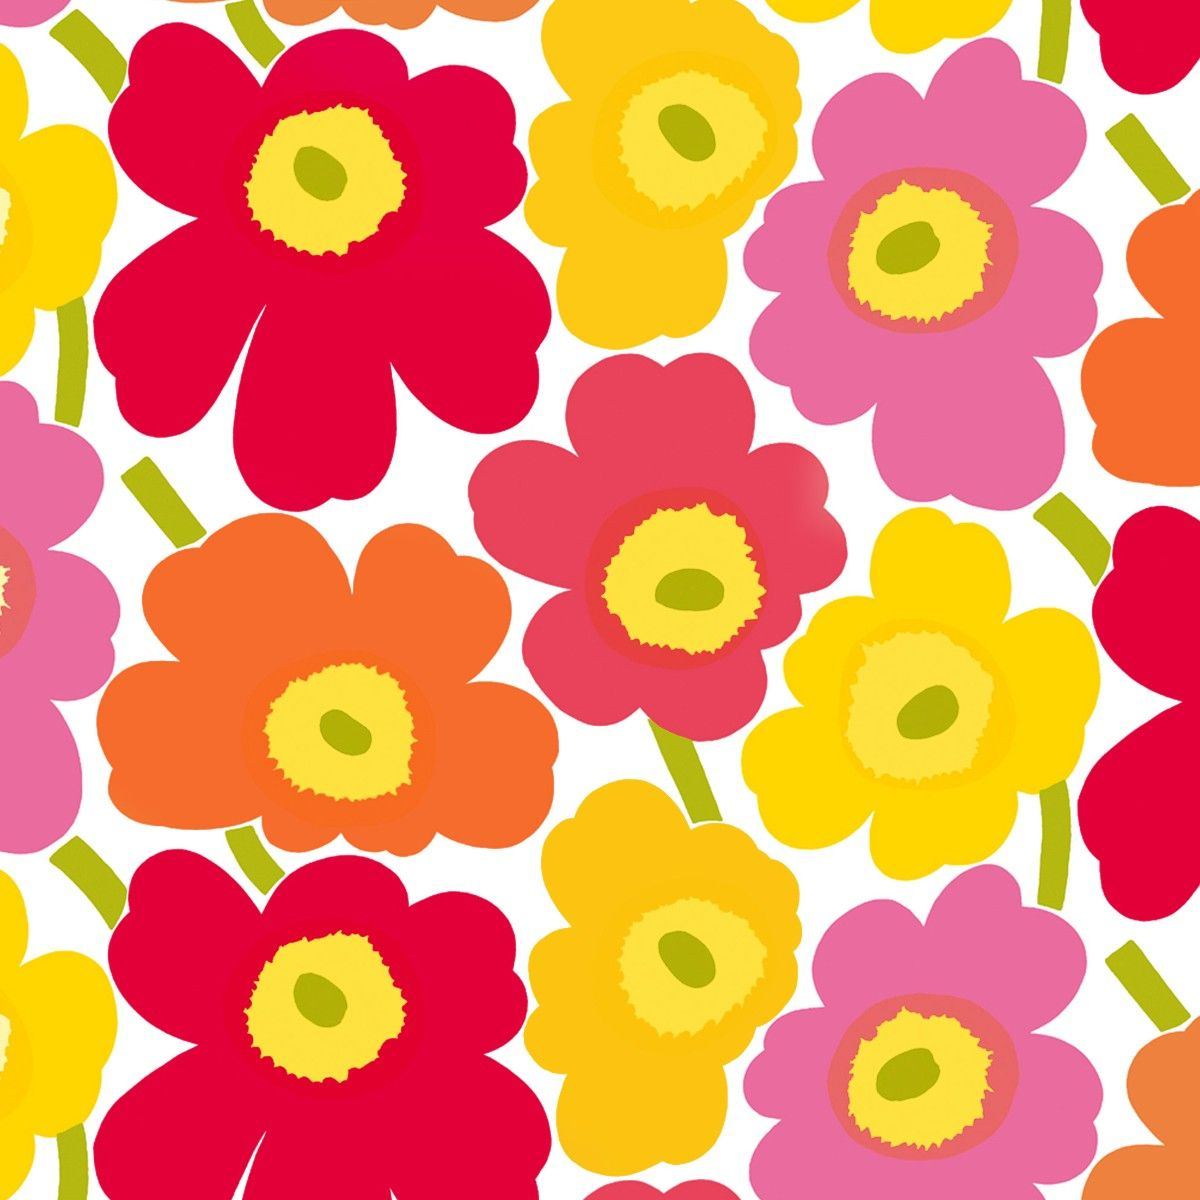 marimekko pieni unikko wallpaper unikko flowers from. Black Bedroom Furniture Sets. Home Design Ideas